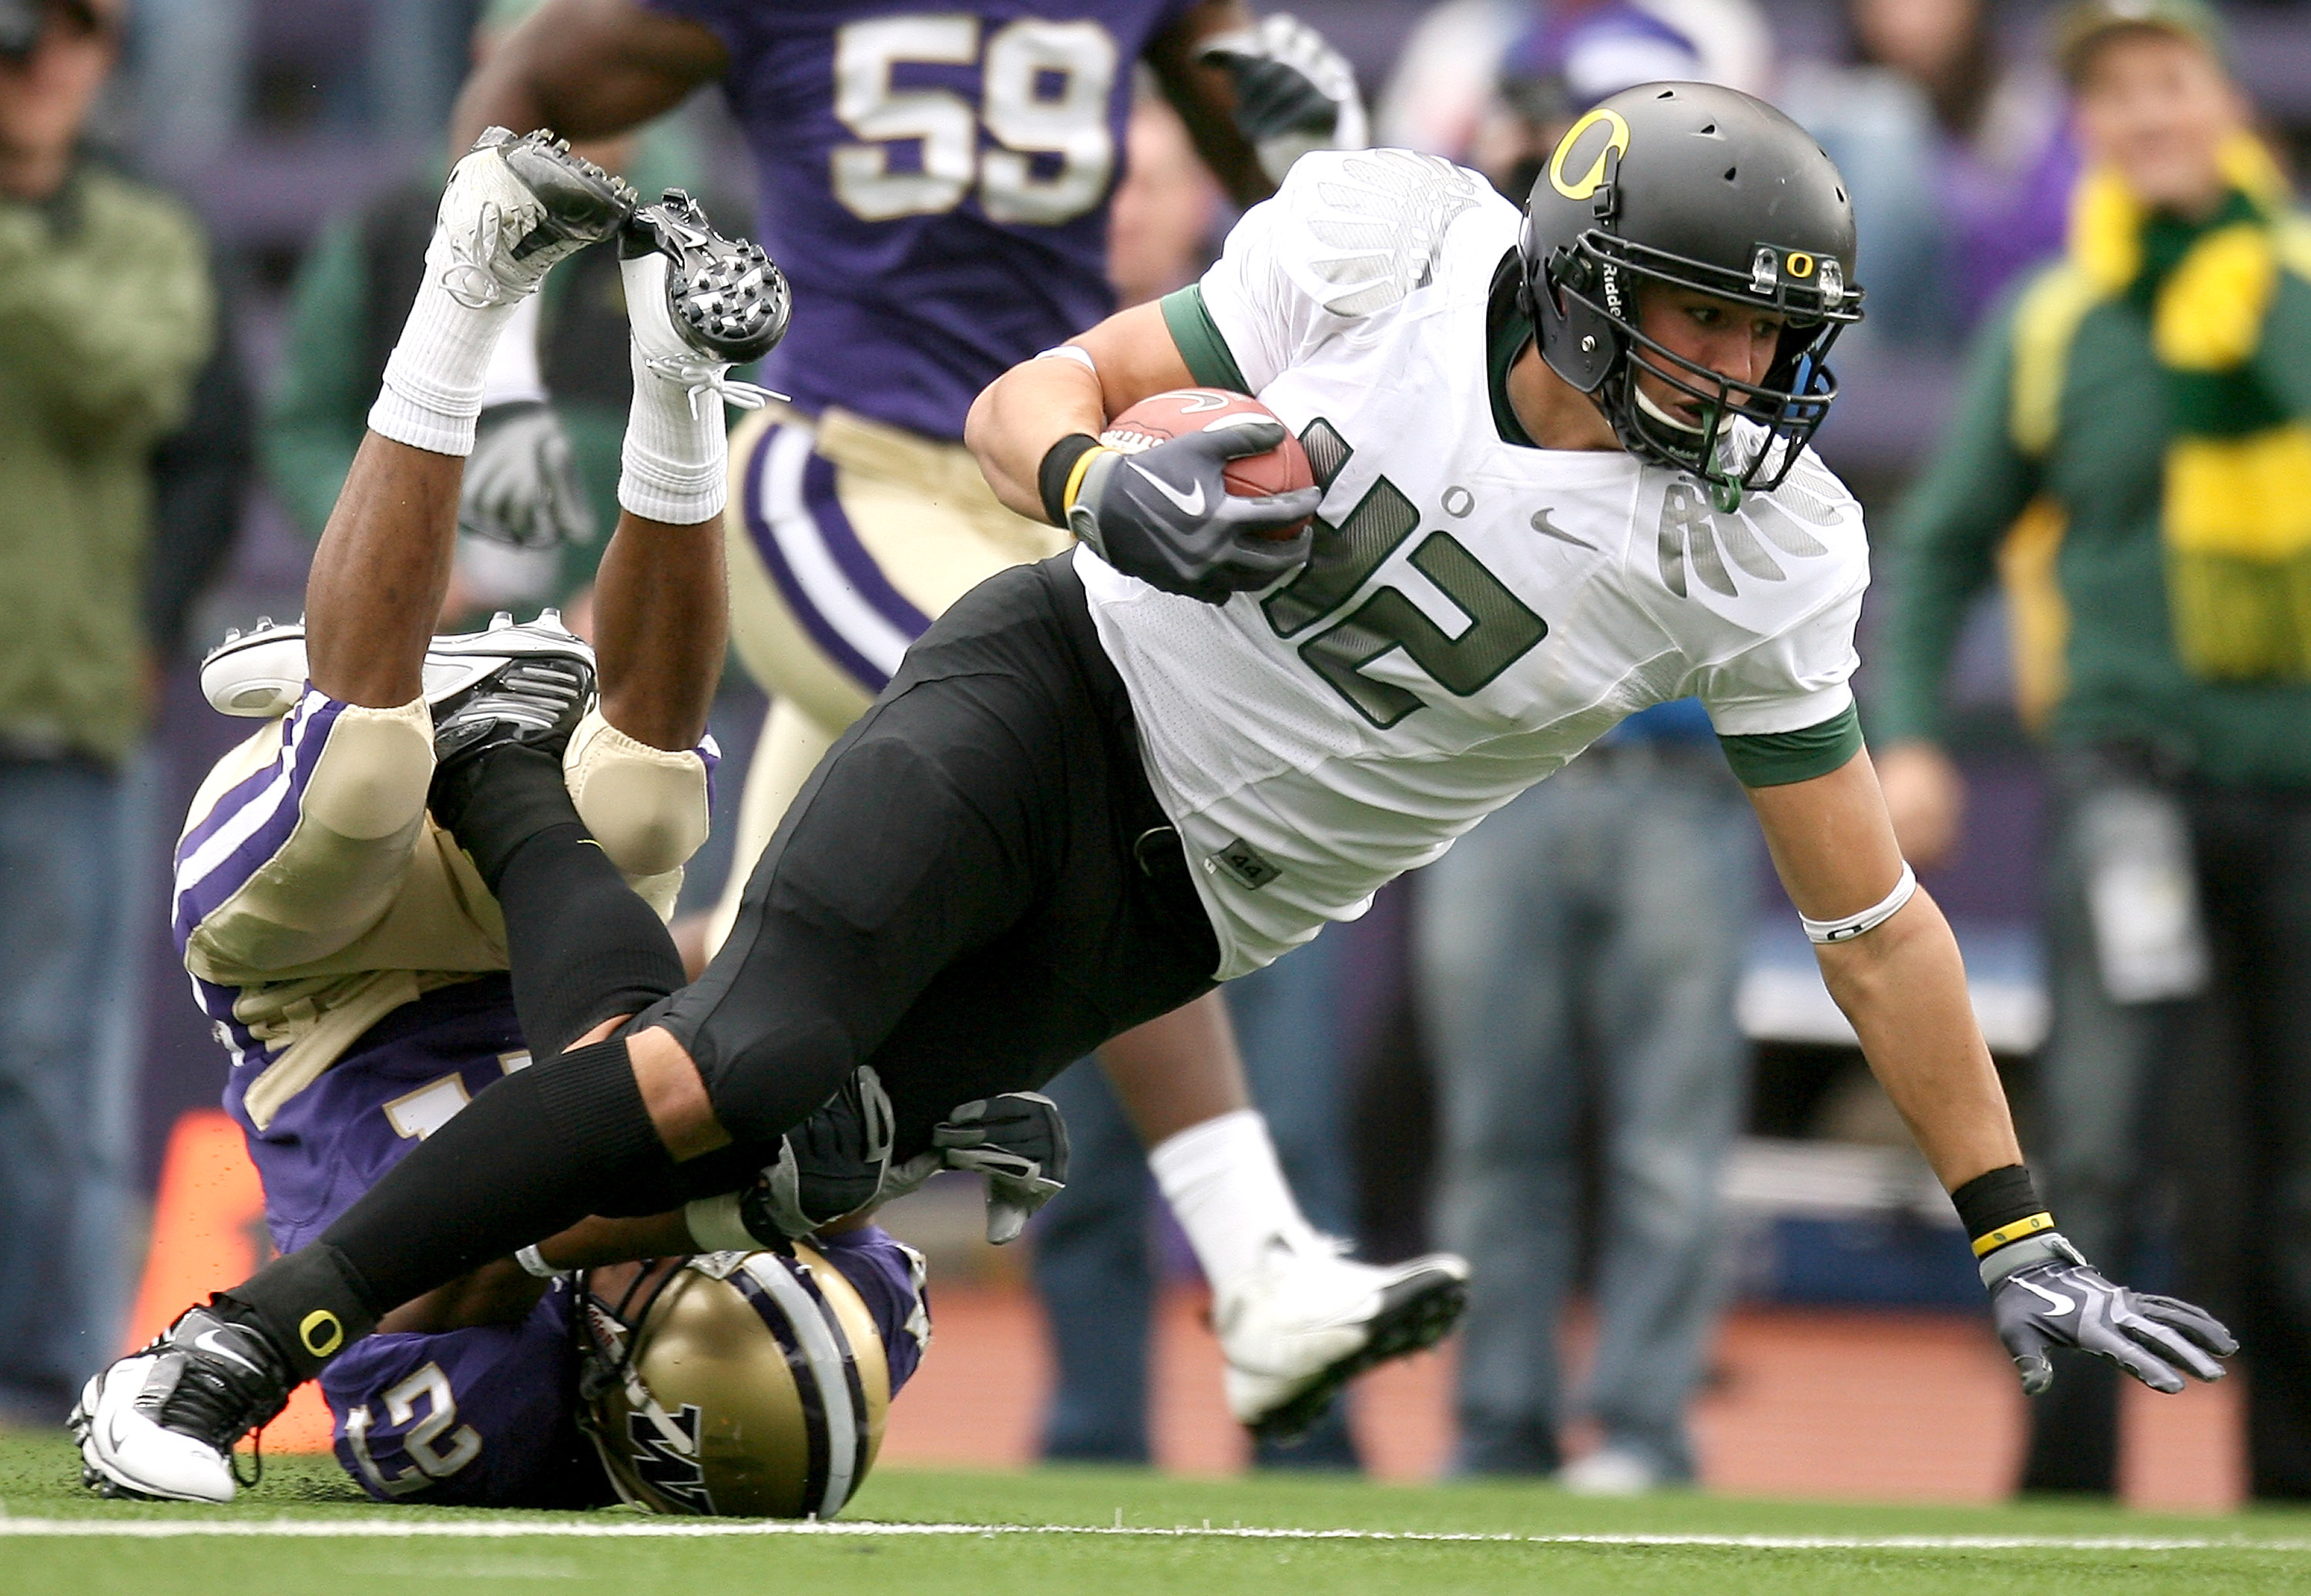 SEATTLE - OCTOBER 24:  Tight end David Paulson #42 of the Oregon Ducks rushes against Adam Long #27 of the Washington Huskies on October 24, 2009 at Husky Stadium in Seattle, Washington. The Ducks defeated the Huskies 43-19. (Photo by Otto Greule Jr/Getty